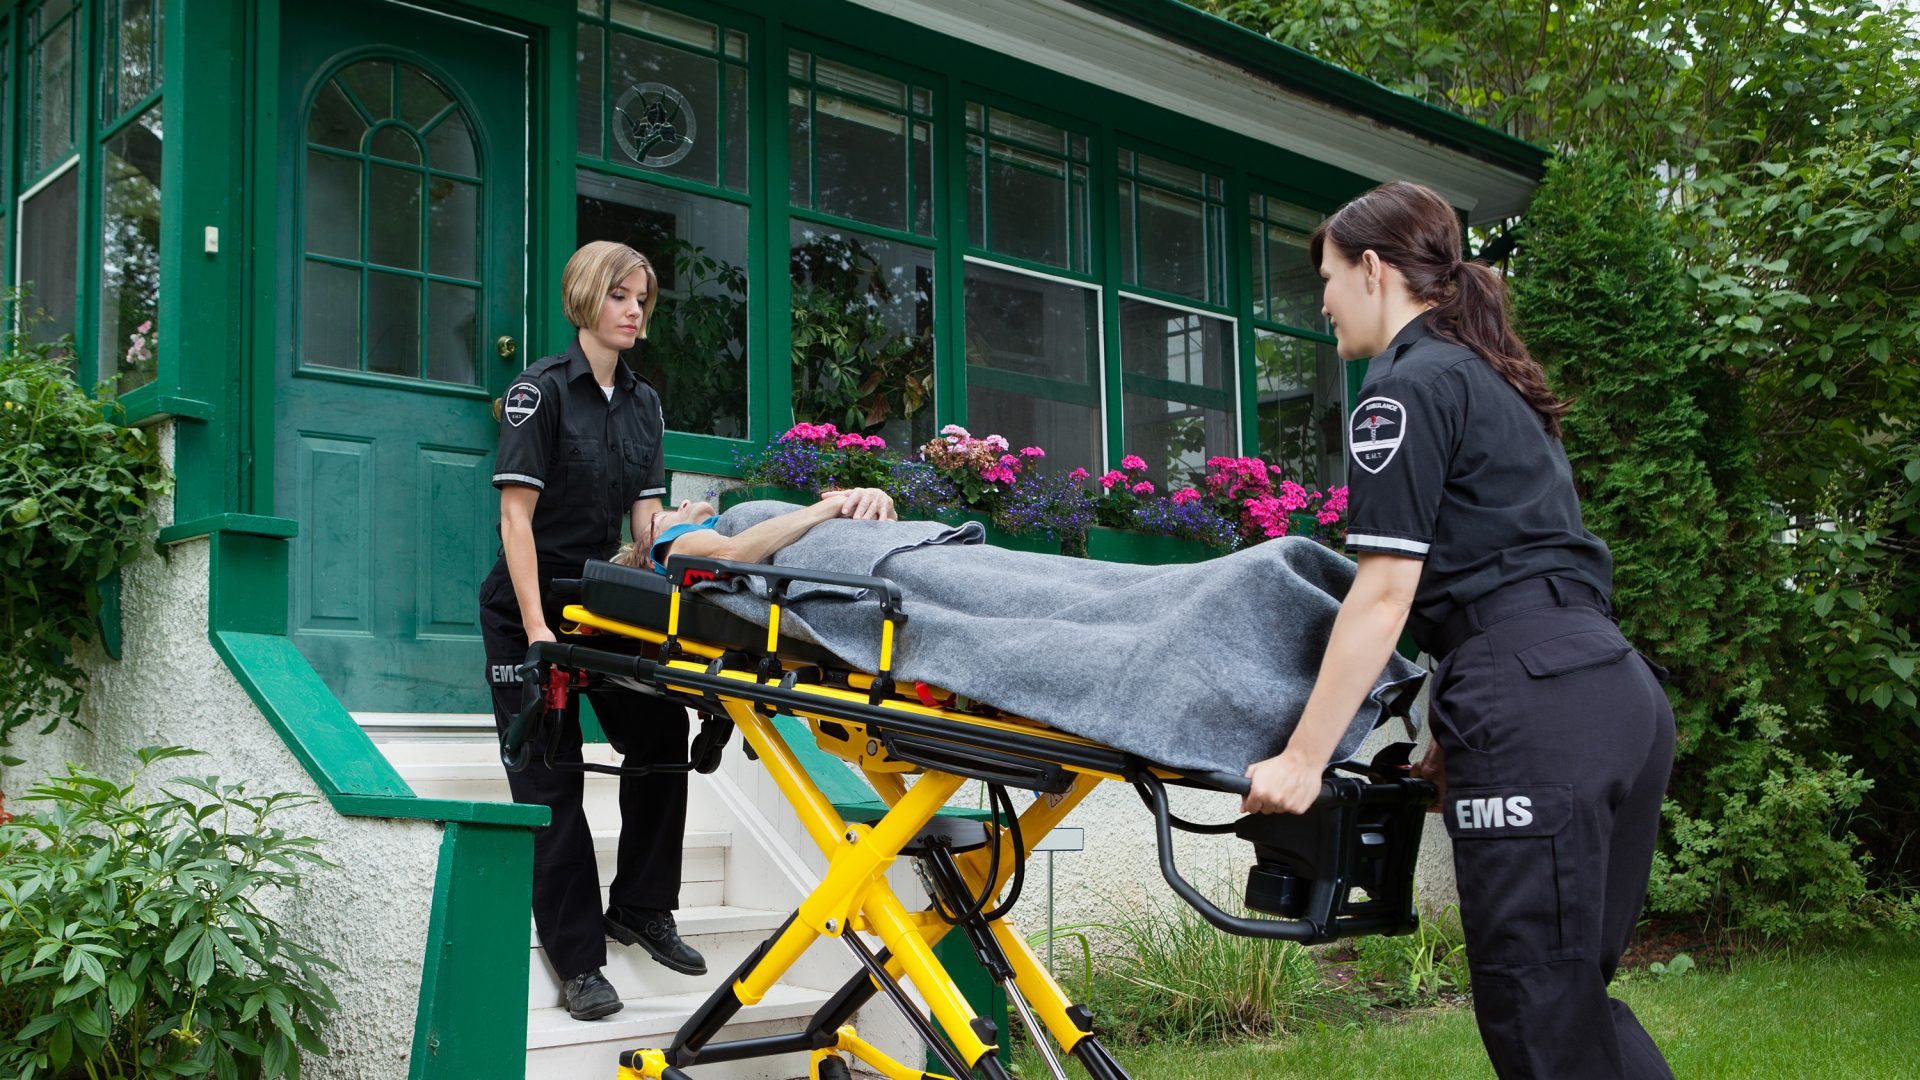 Two female paramedics remove an elderly woman from a home.